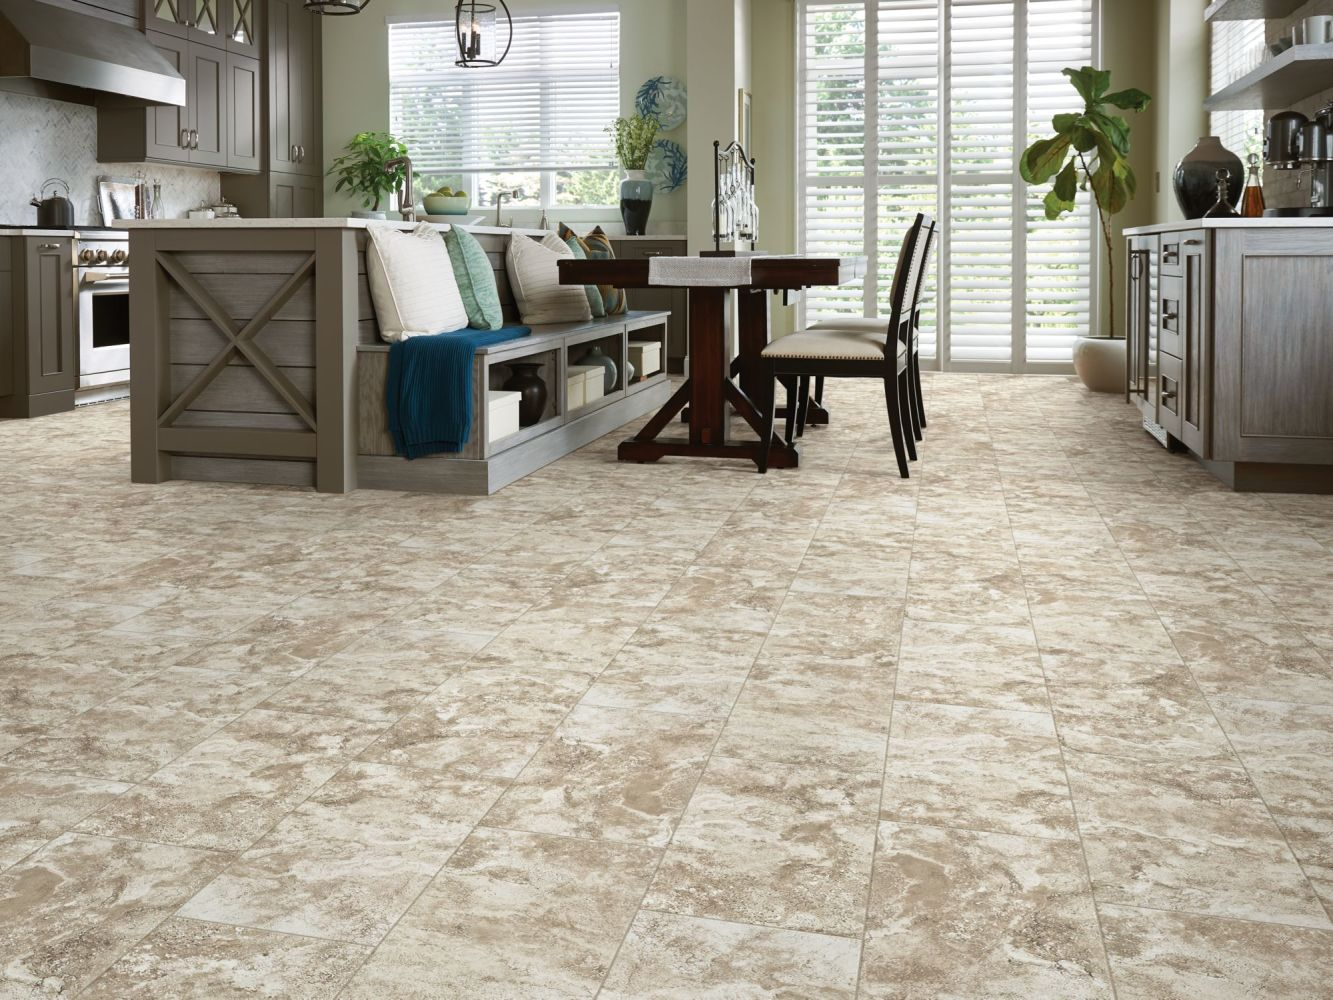 Shaw Floors Ceramic Solutions Stonework 13×13 Brown 00700_243TS